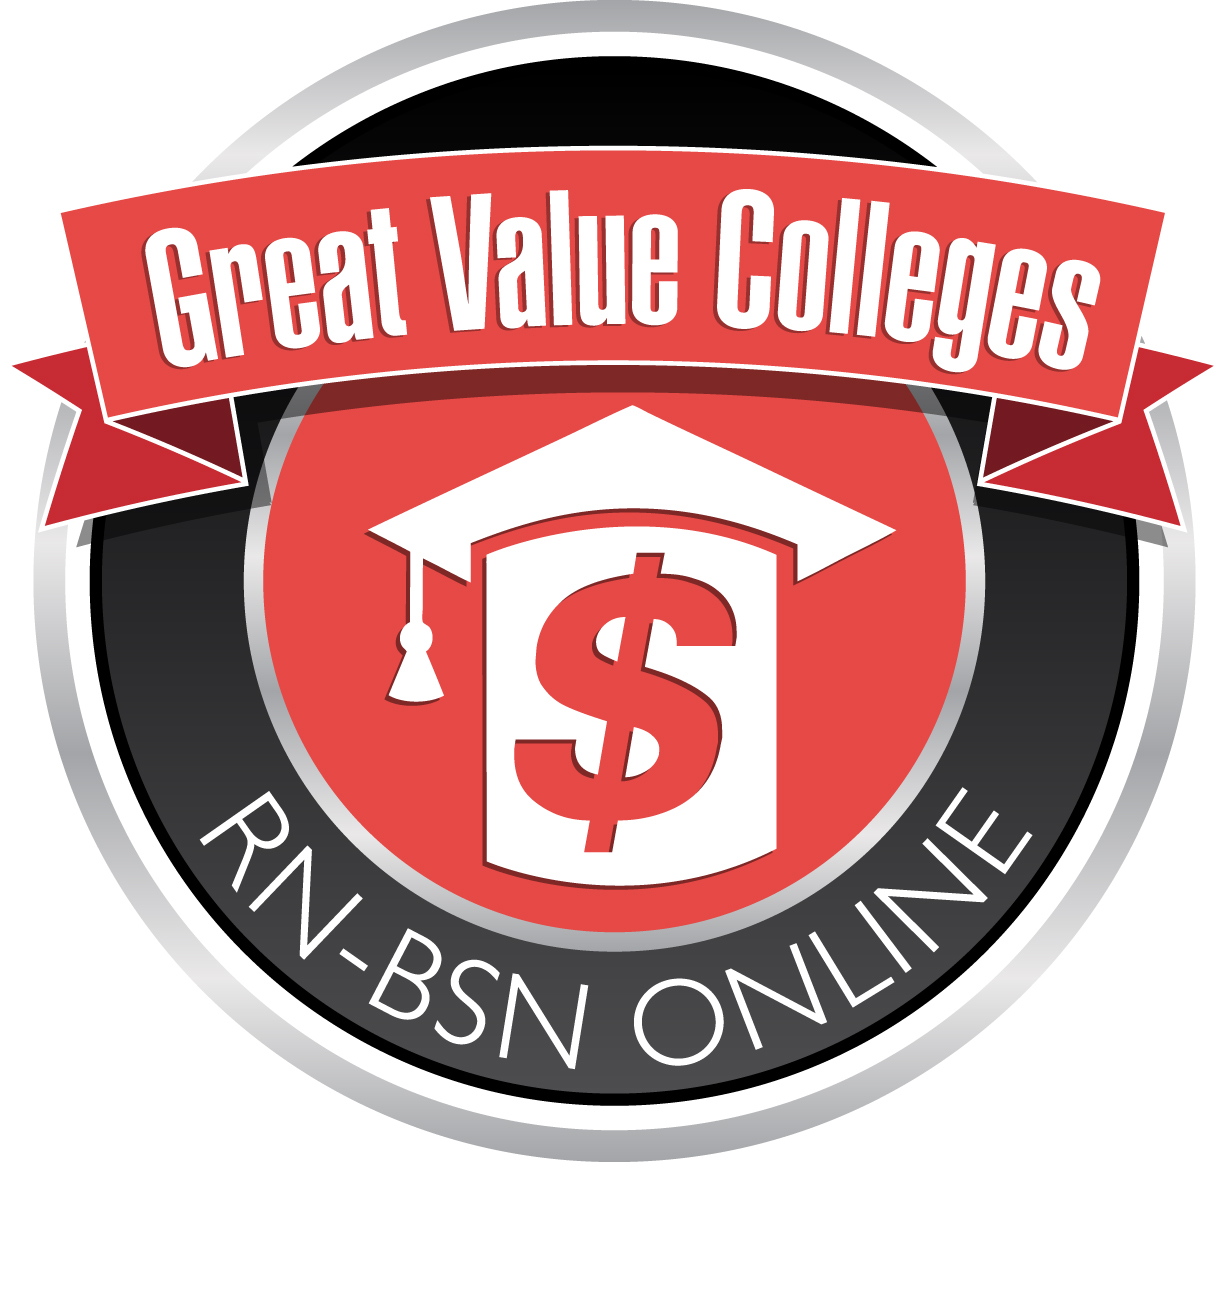 Great Value Colleges RN -BSN Online logo Cap and Gown and Money symbol